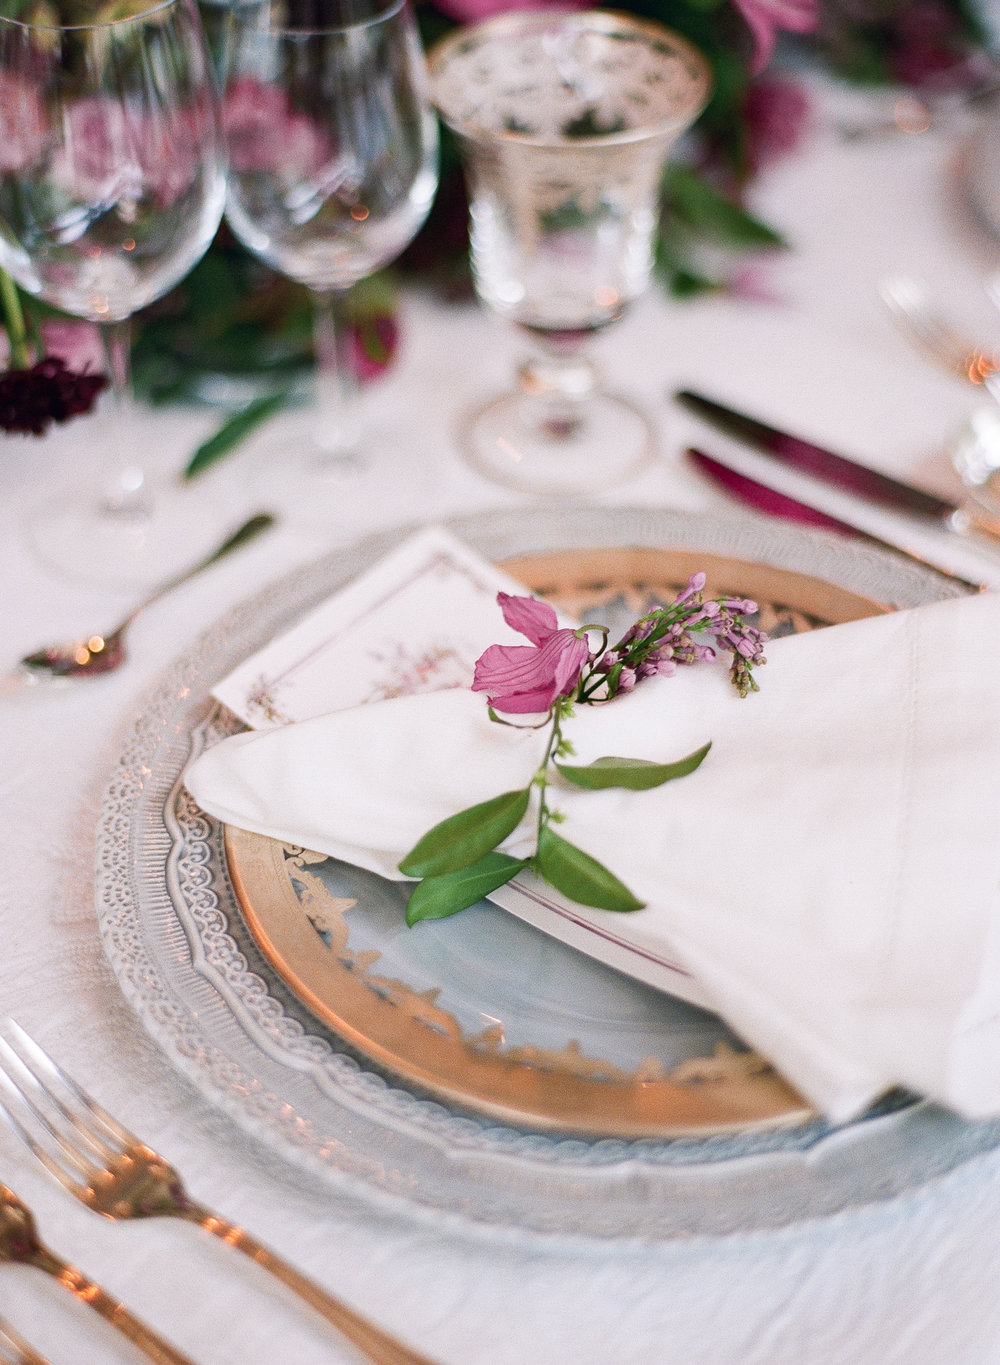 table setting design by The Wildflowers | featured on Style Me Pretty | follow along on instagram: @ thewildflowers_com